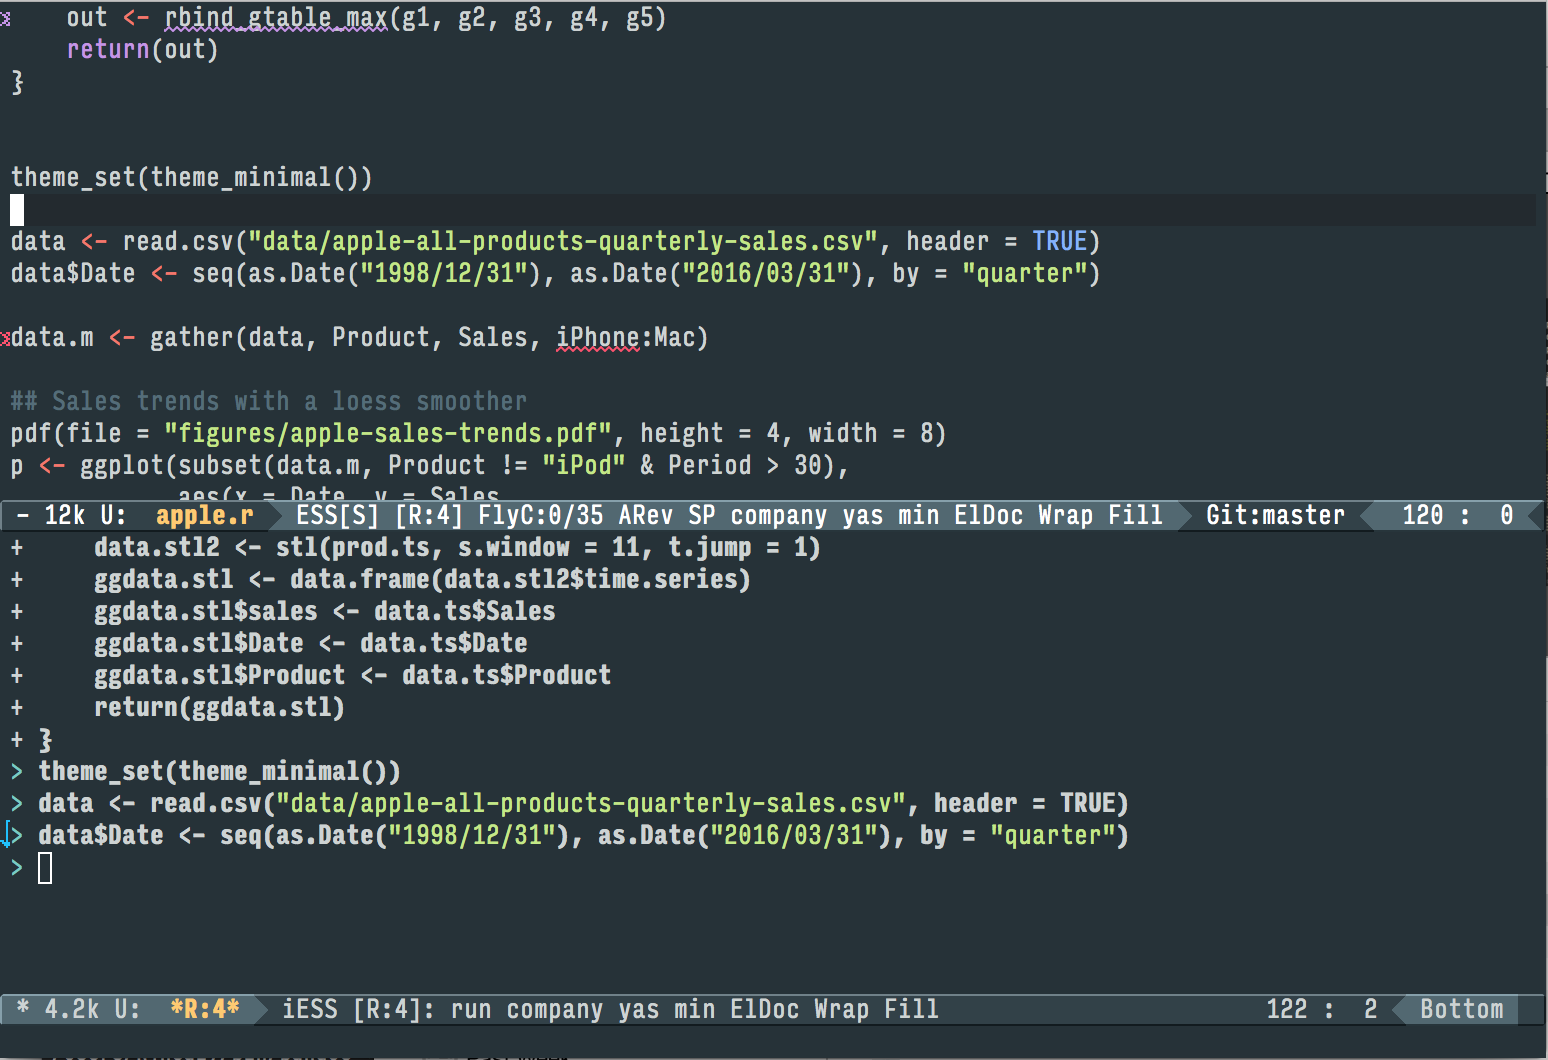 Working with R in Emacs using ESS. A document containing R code is open in the top half of the screen. Below the divider, an R session is running, also inside Emacs. Code from the top pane is sent to the bottom with a keyboard shortcut, where it is evaluated by R. We can also jump down to the bottom pane and do work there. Small details like a lint checker, active line highlighting, and revision-control information are also visible.